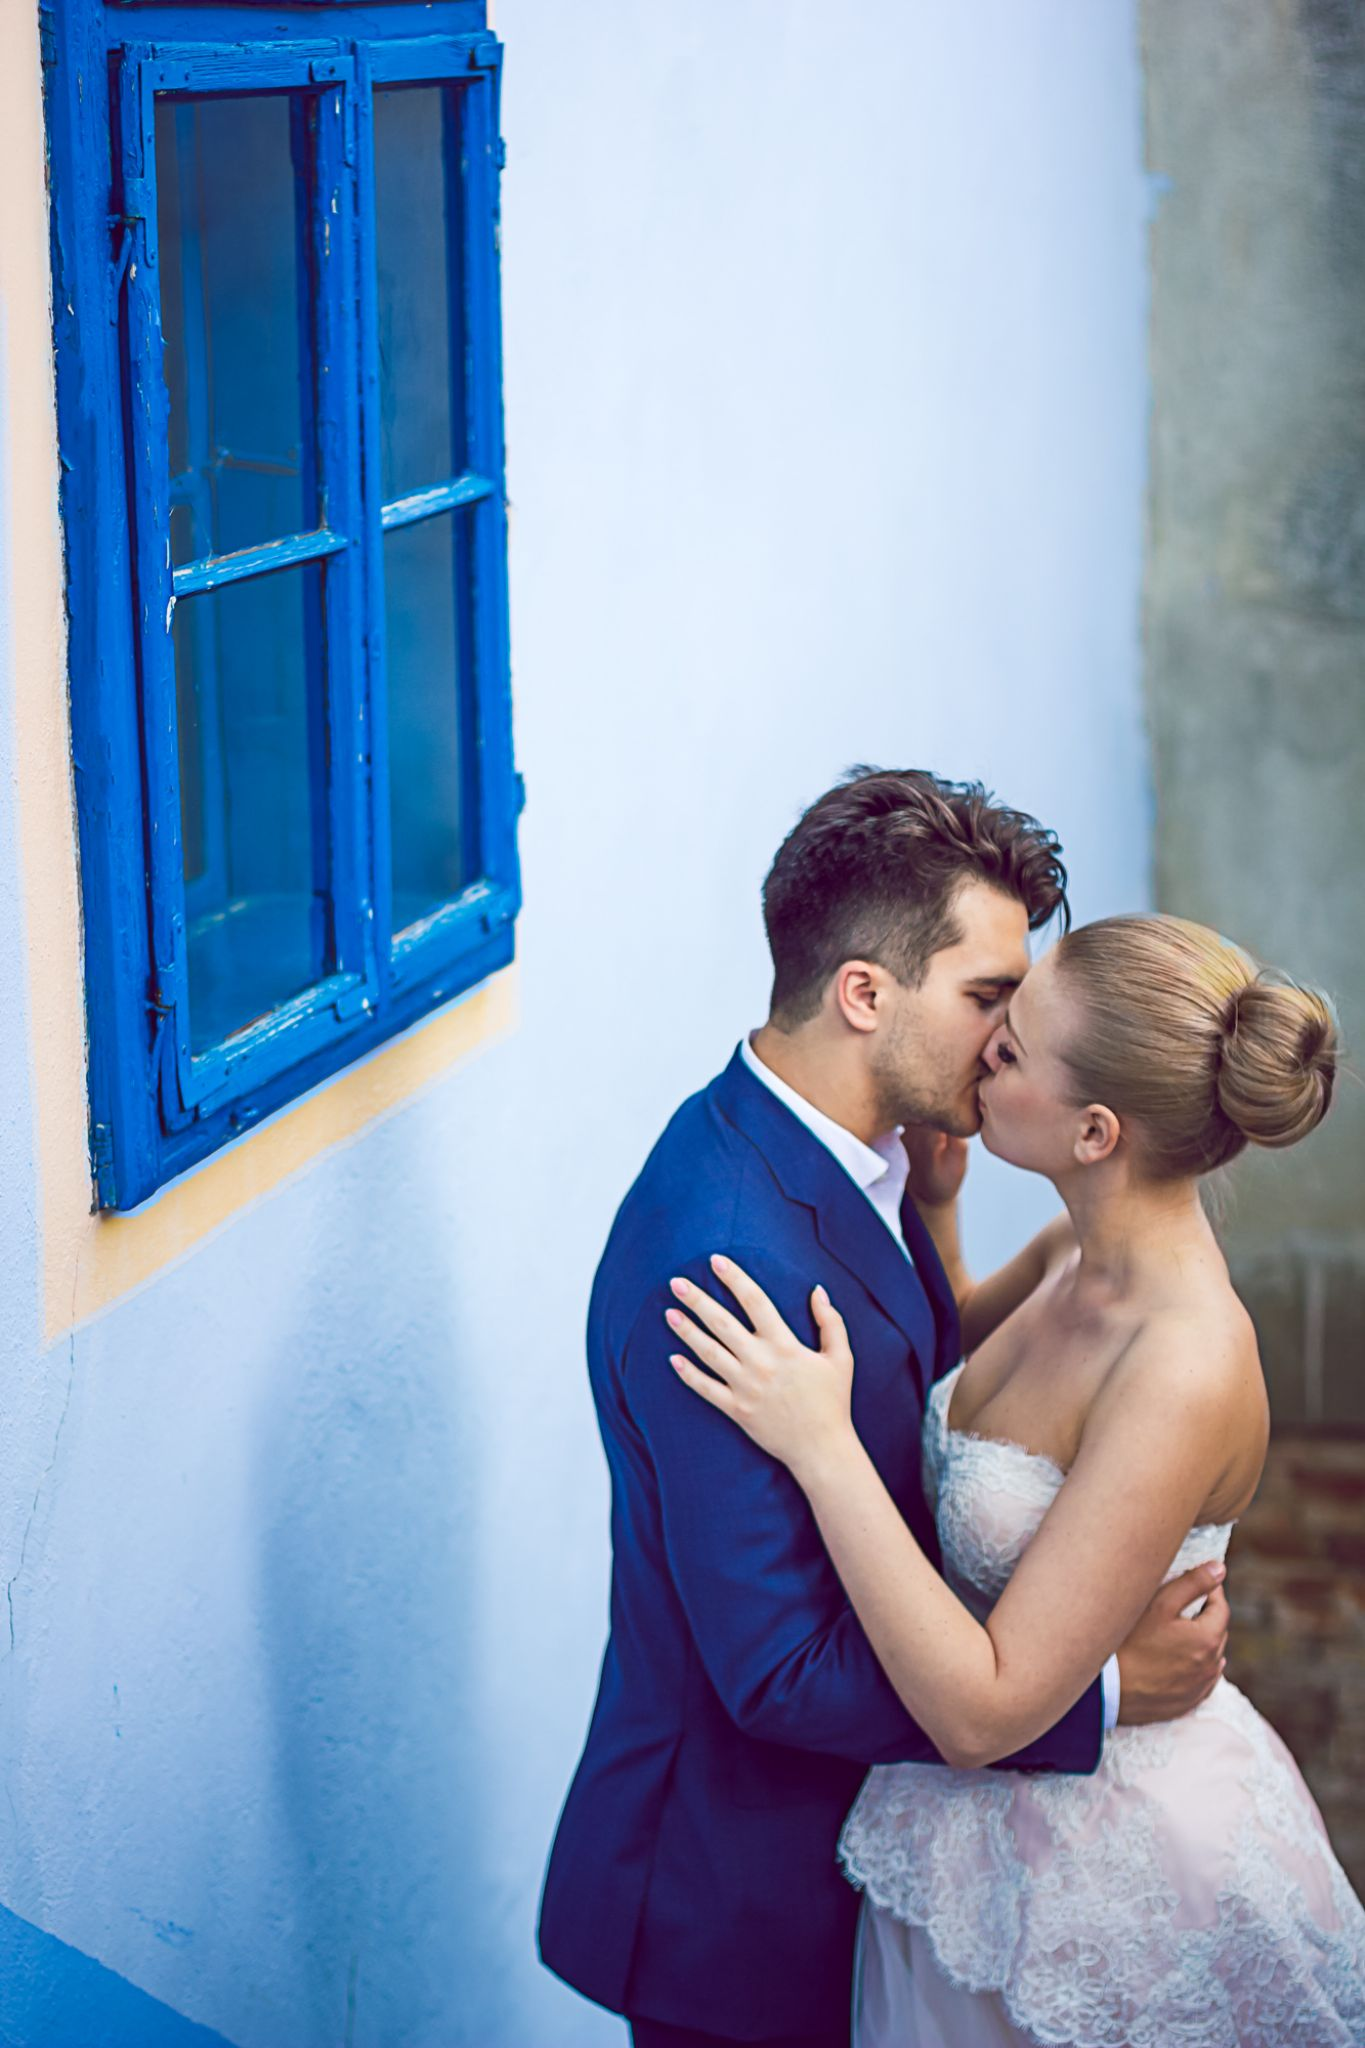 #love #passion #couple by Victor Detto